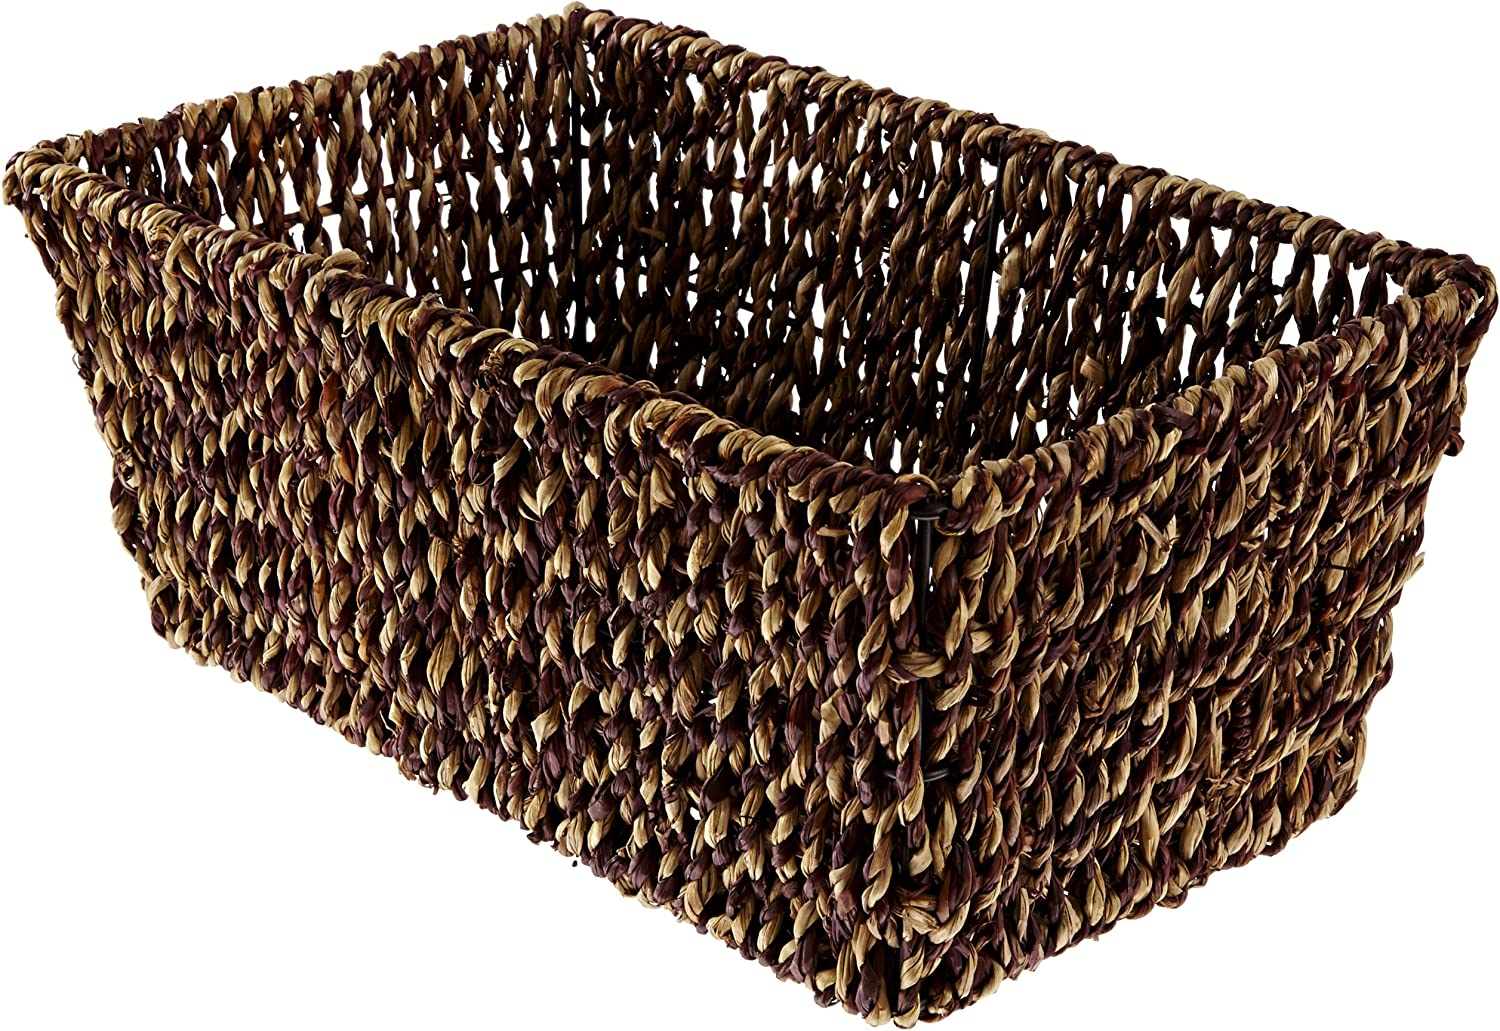 Hoffmaster BSK2151A Seagrass Basket, fits folded guest towels 4-1/2 inches by 8-1/2 inches, actual basket size 10 inches long by 6-1/8 inches wide by 4-3/8 inches tall